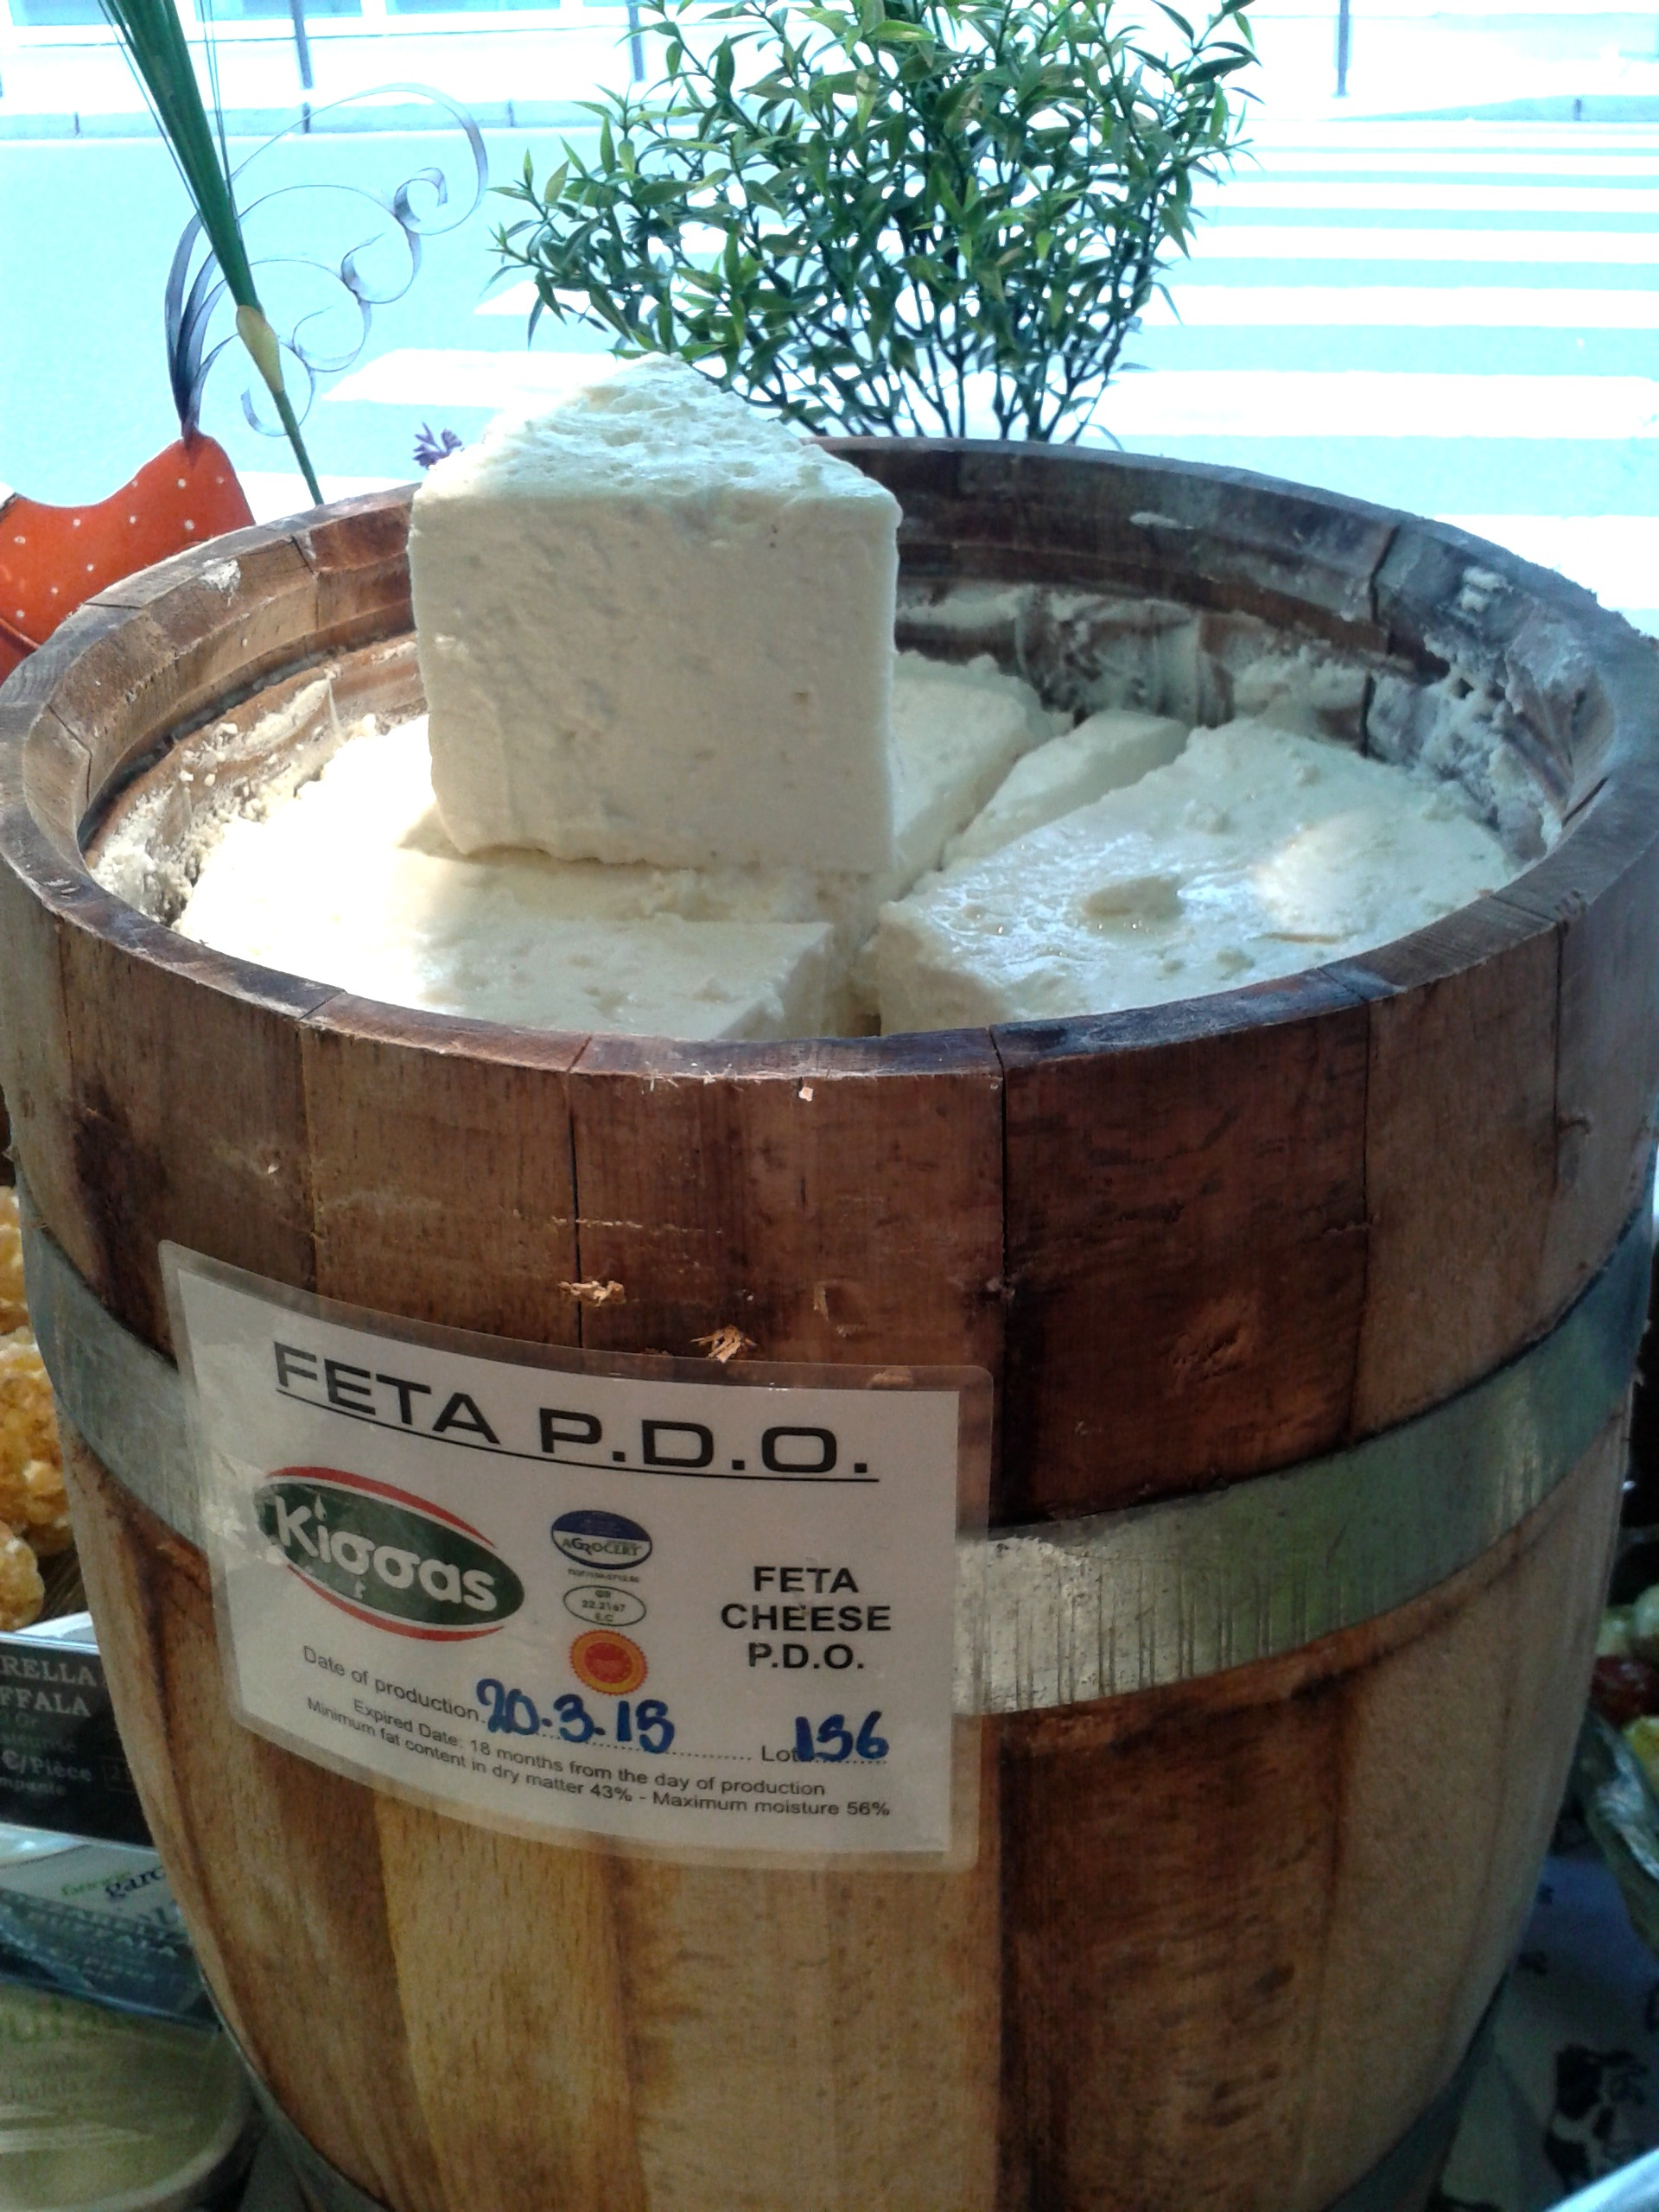 Feta PDO from the barrel